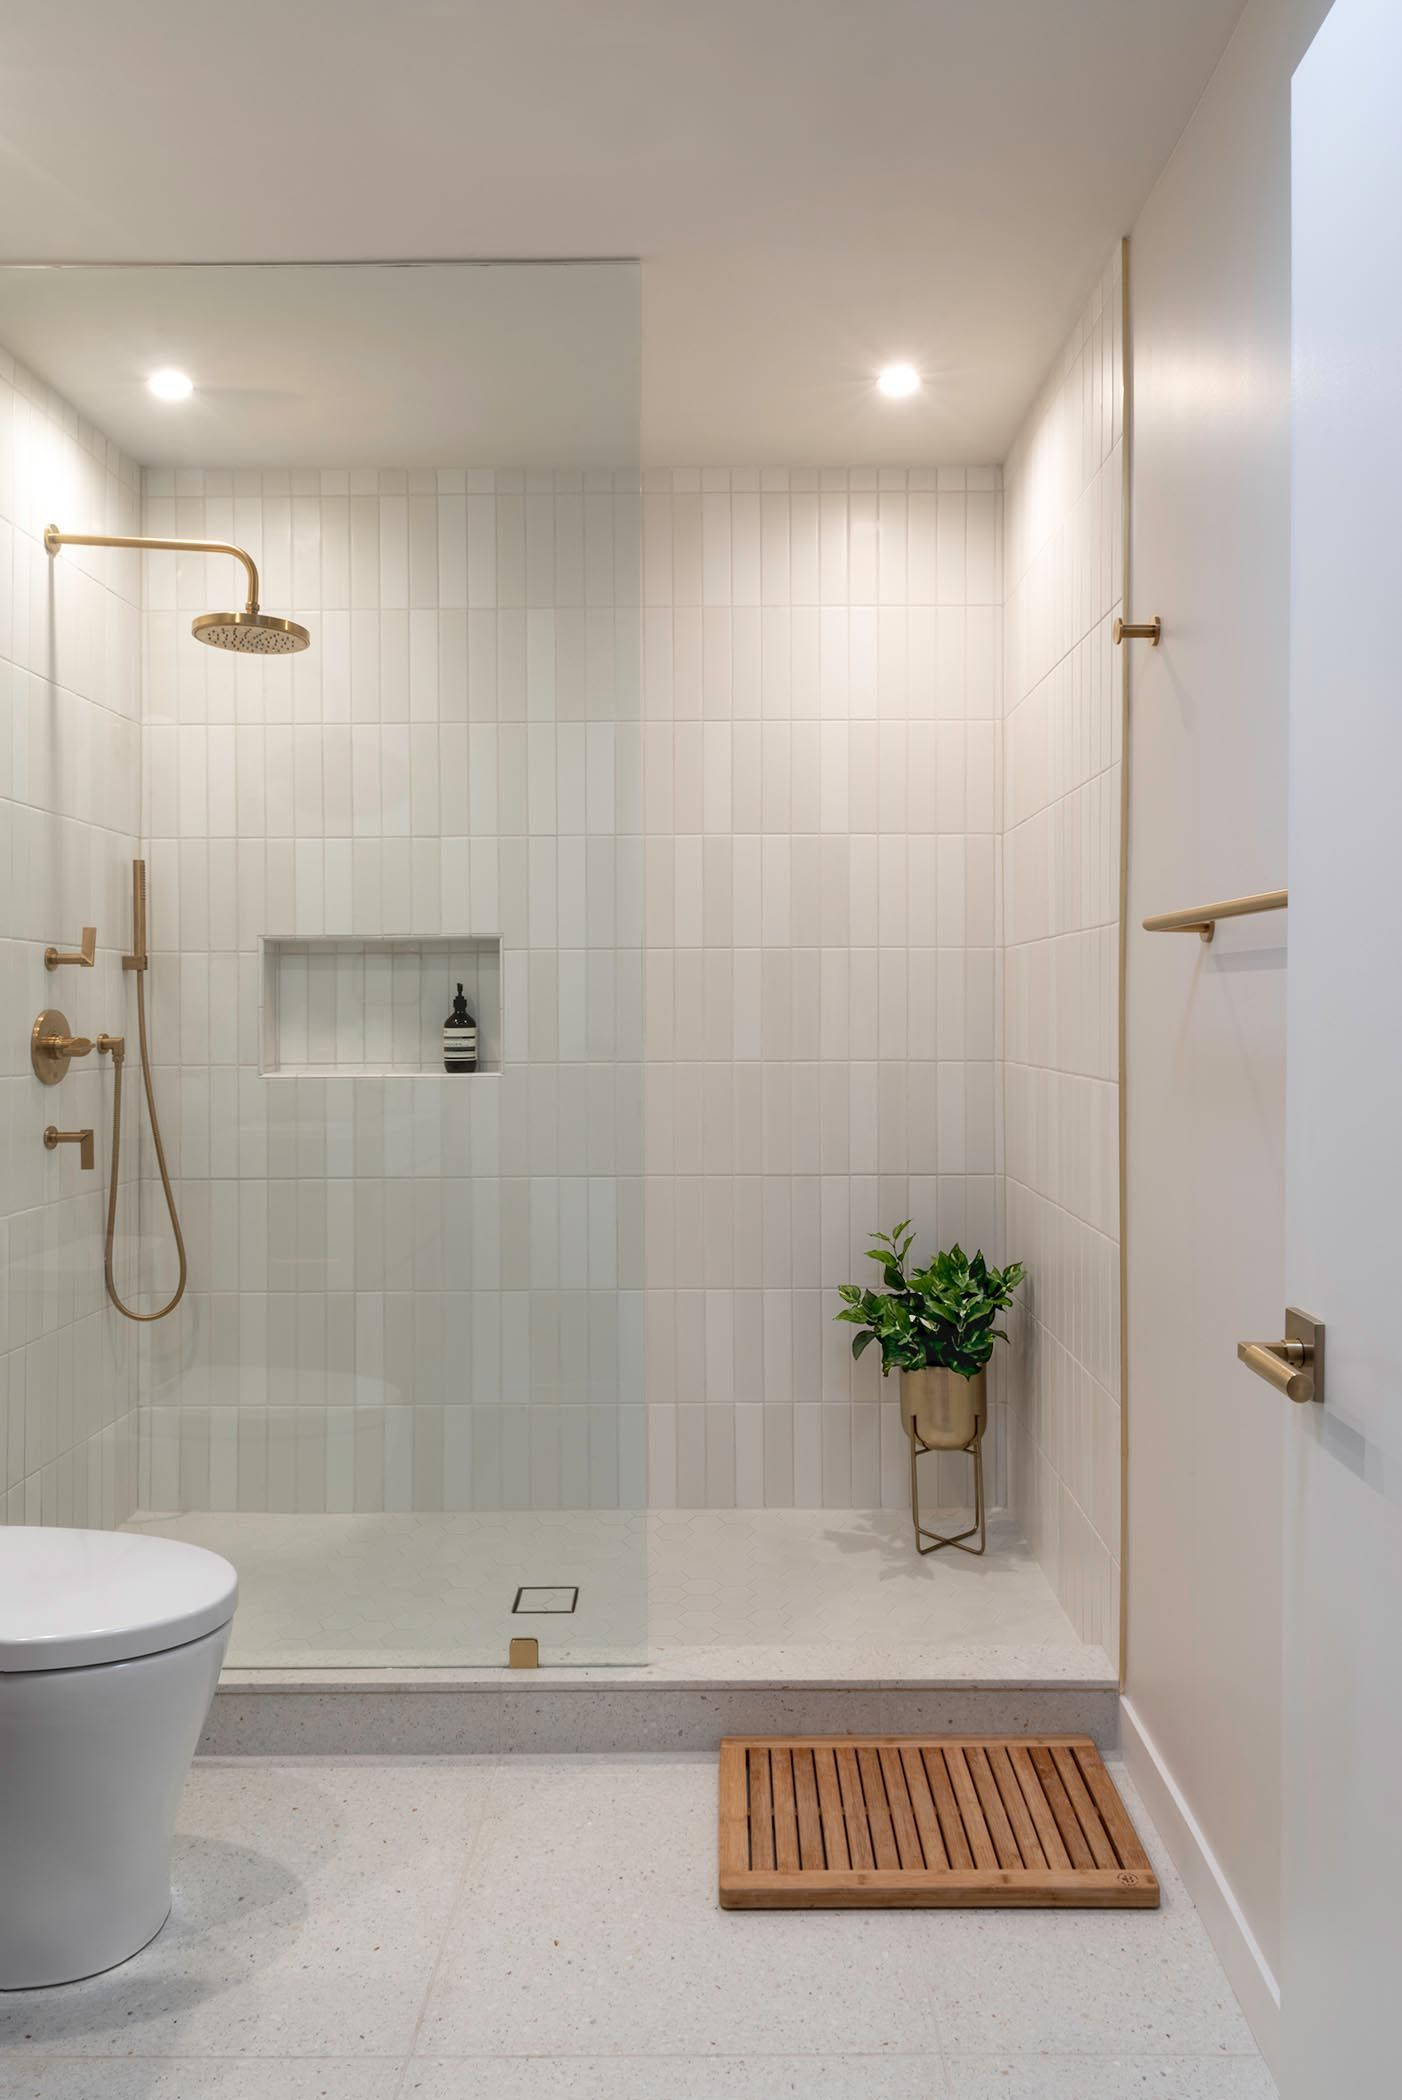 Two Bathrooms In The Same Home That Each Have A Distinct Style In 2021 Latest Bathroom Tiles Design Modern Bathroom White Bathroom Tiles Latest full bathroom wall